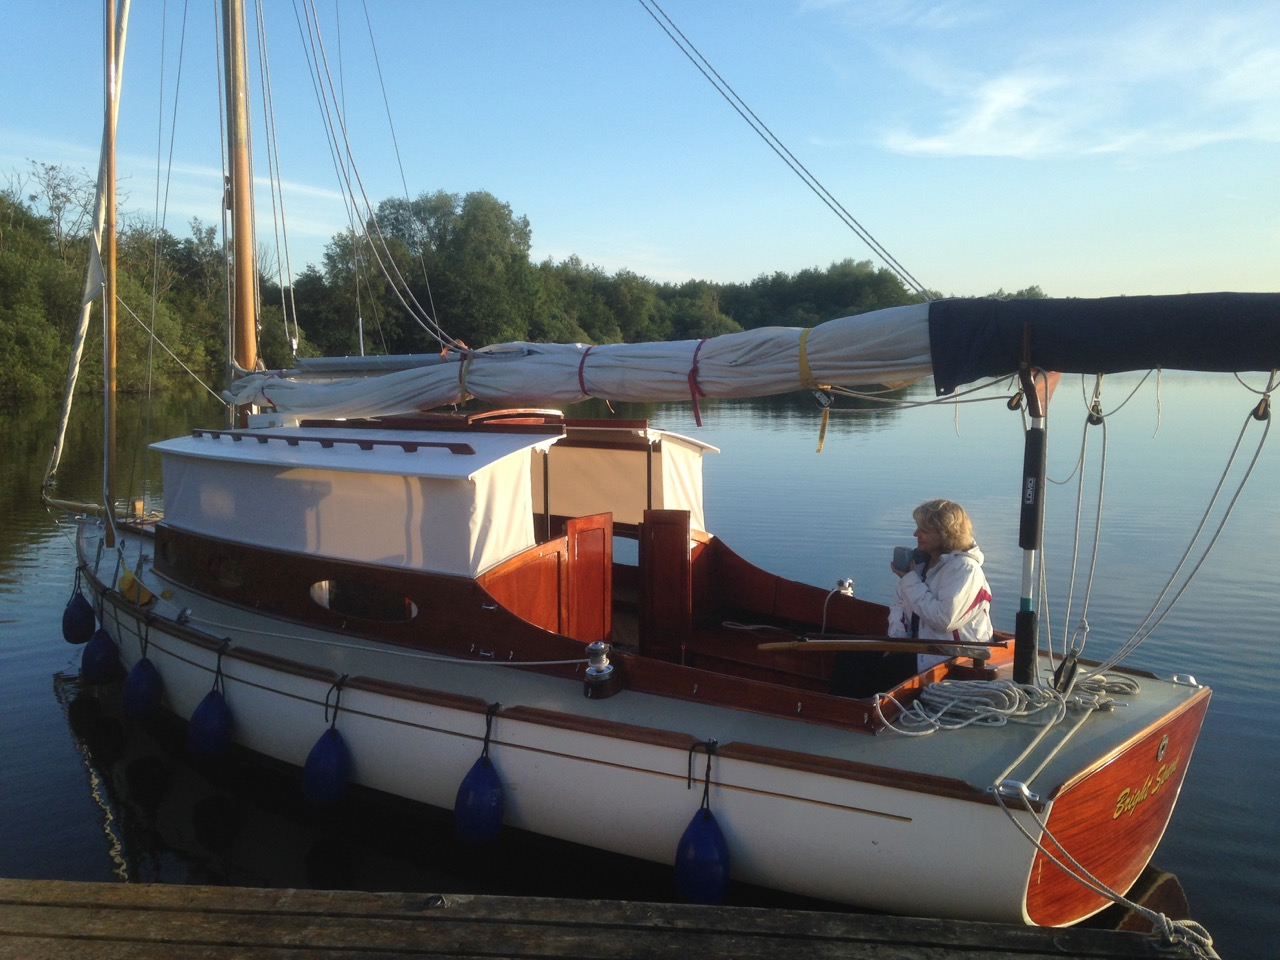 Copy of Relaxing-after-a -great-days-sail